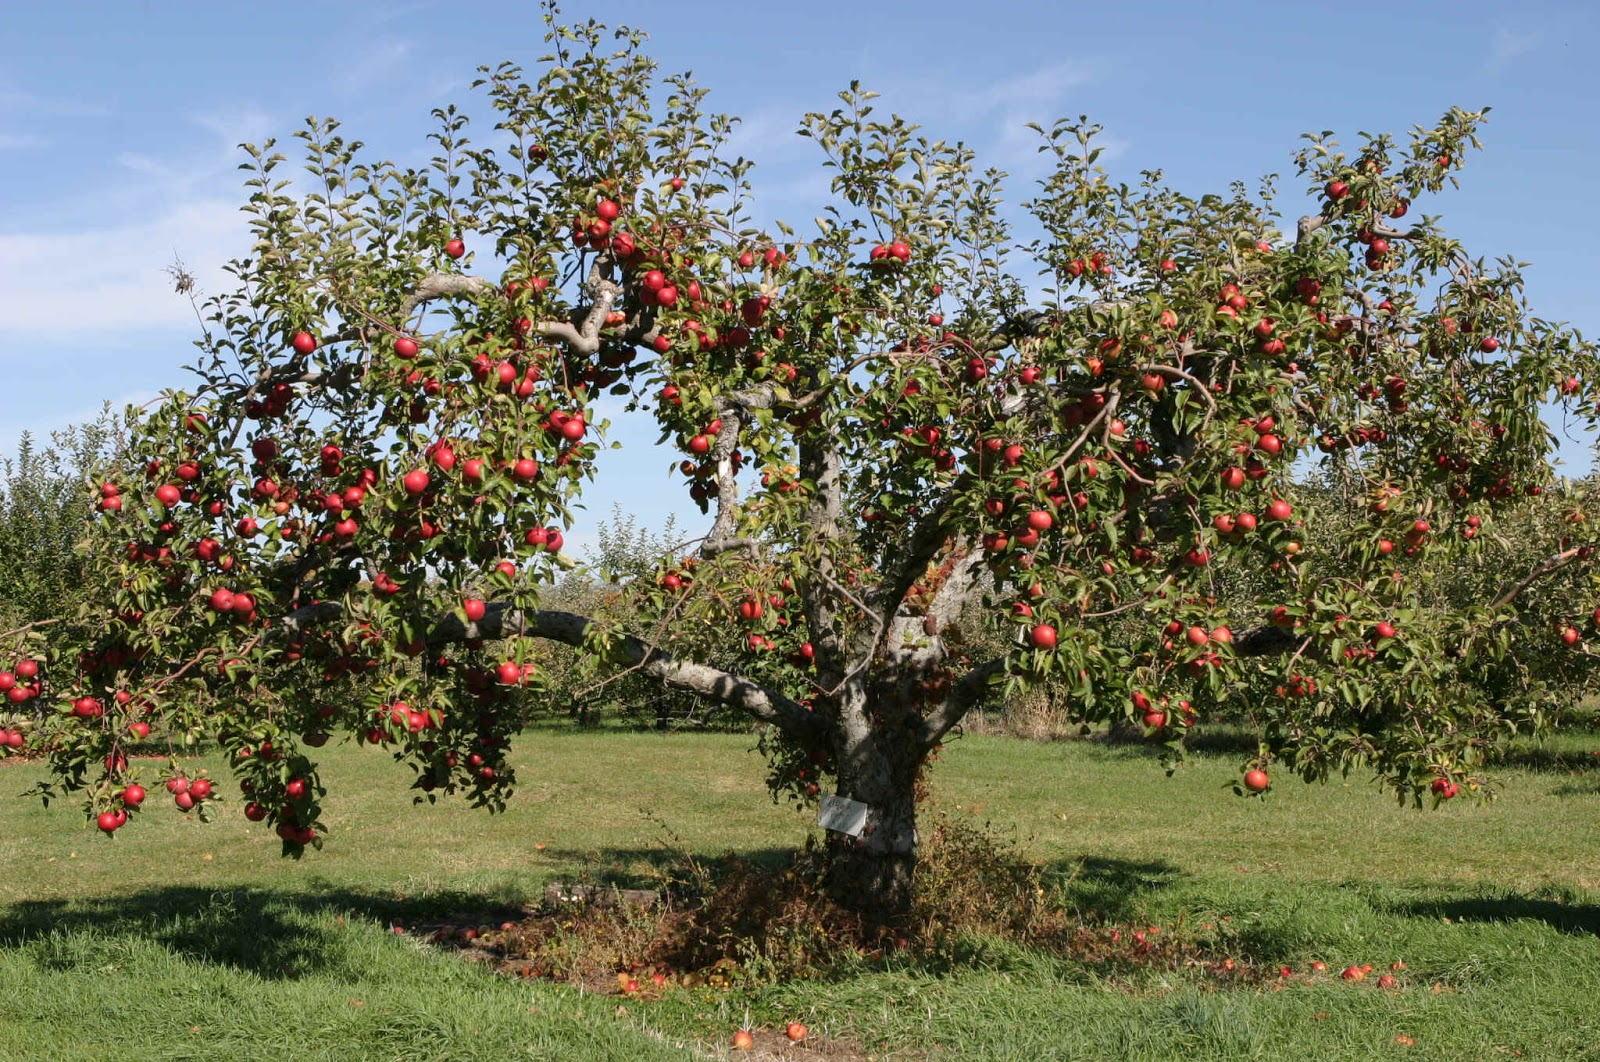 HOW TO PRUNE AN APPLE TREE |The Garden of Eaden